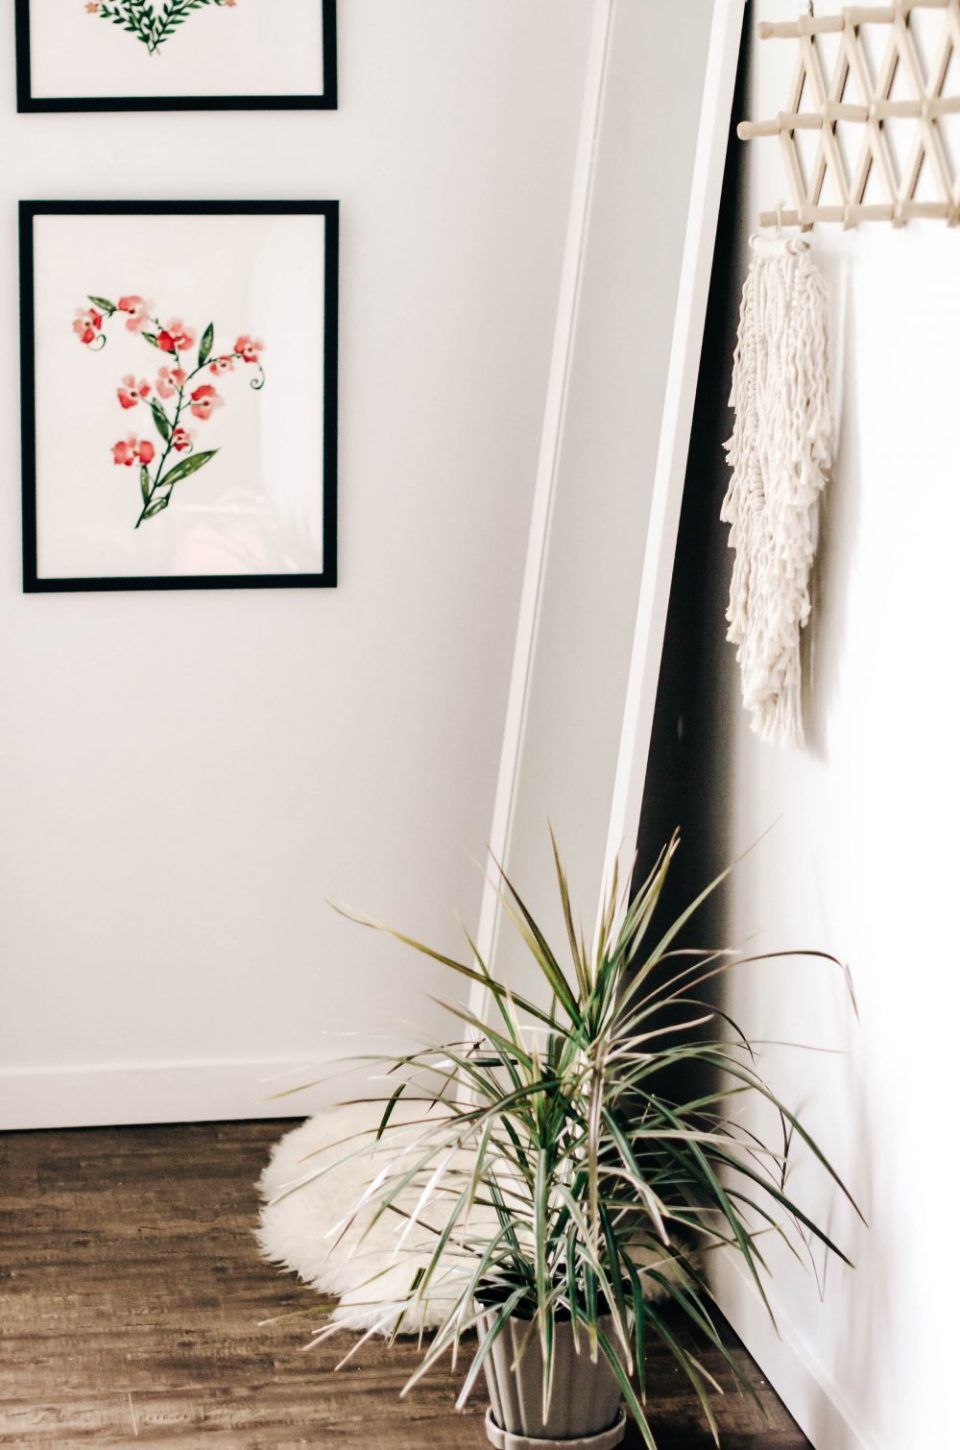 7 House Plants that are Easy to Keep Alive